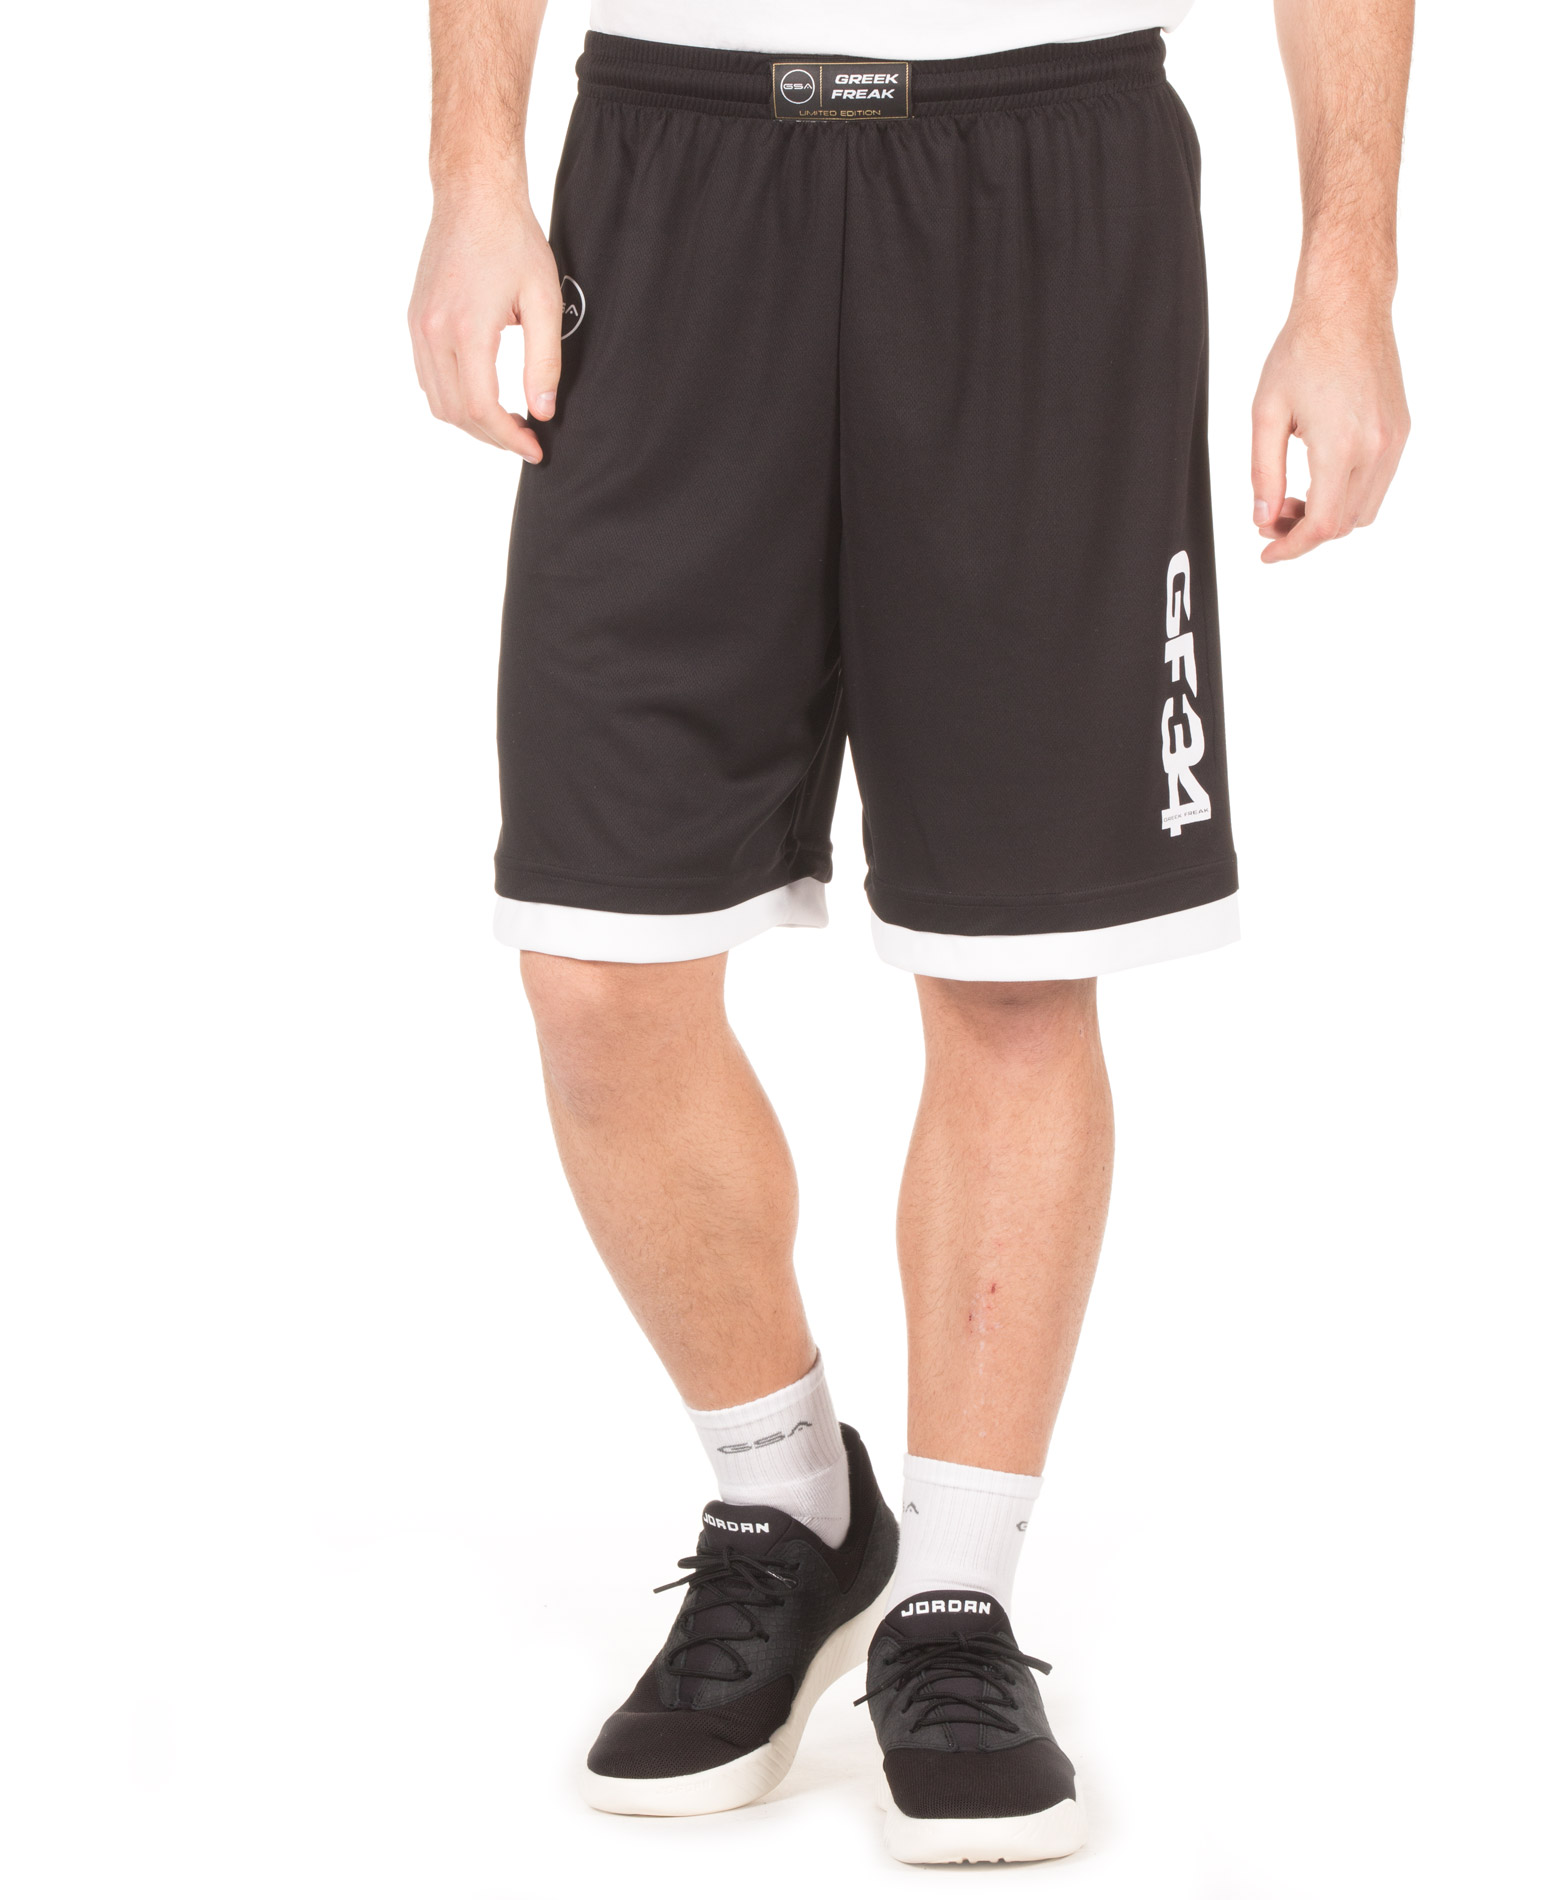 GSA X GREEK FREAK BASKETBALL SHORTS 34-18004-01 Μαύρο